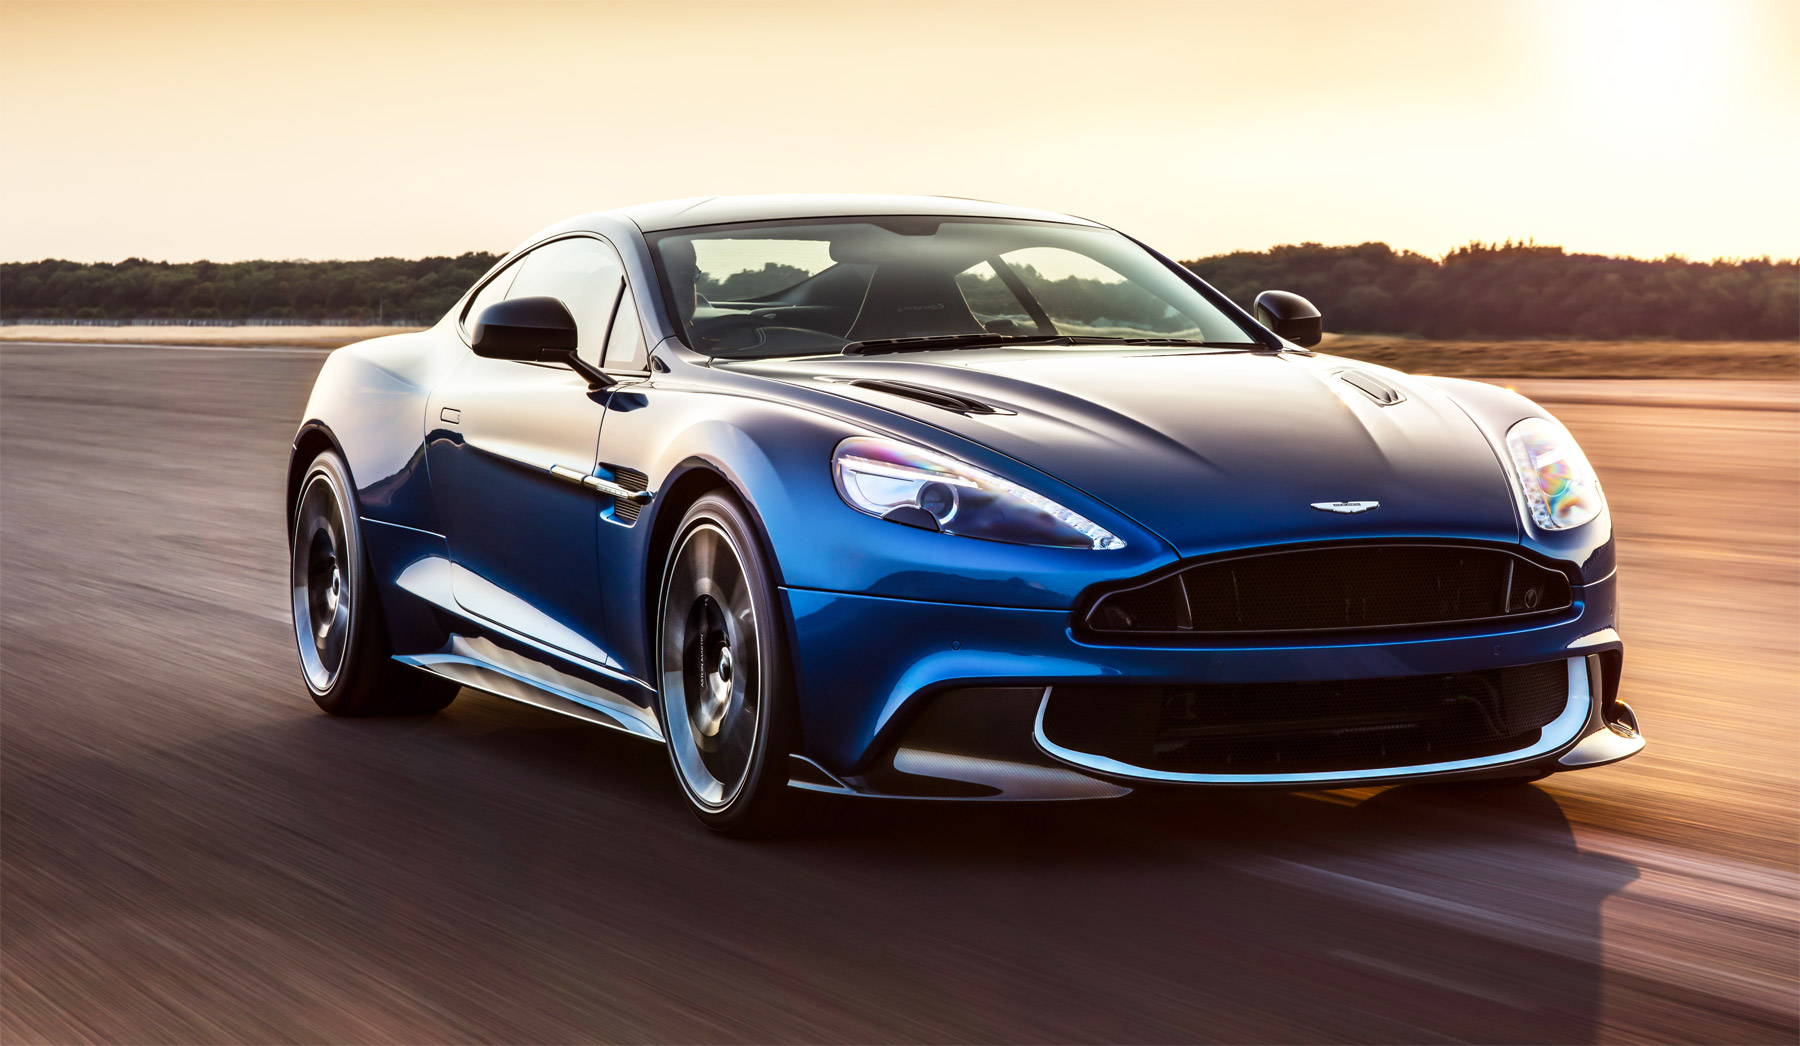 Aston Martin Vanquish S, More Power, Better Looking & Greater Poise